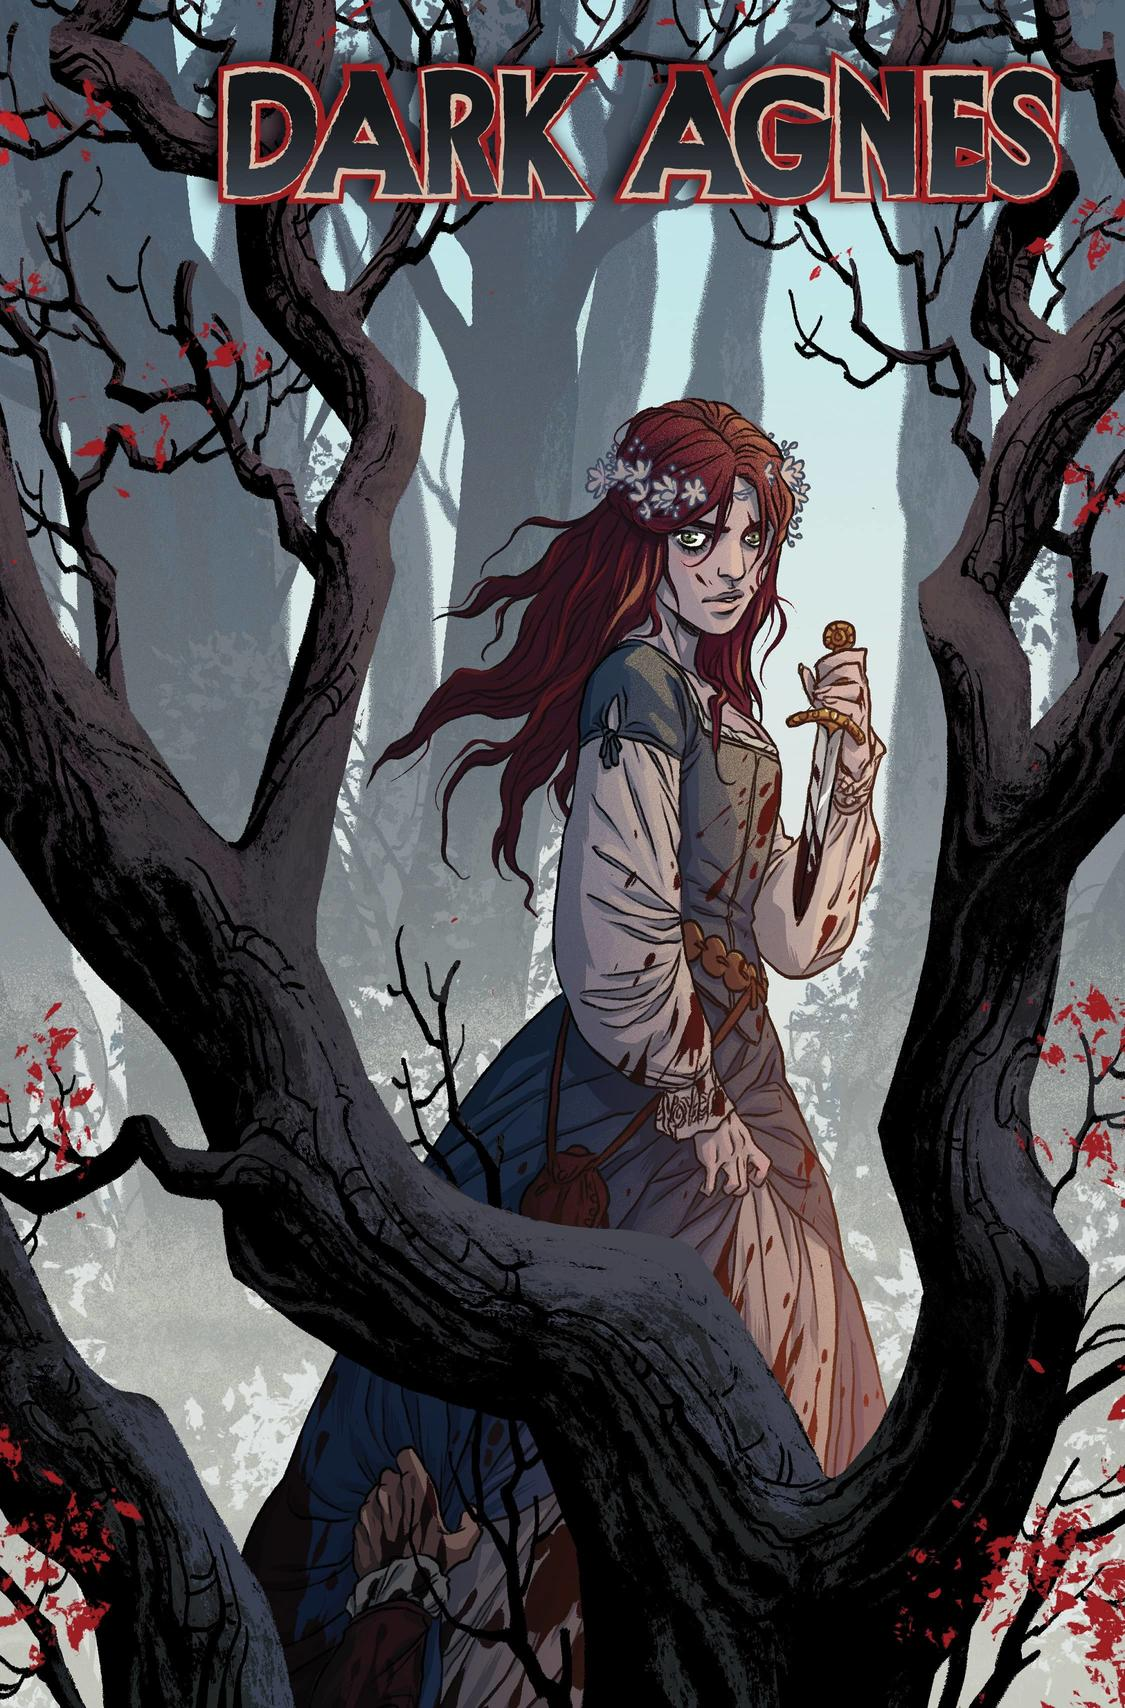 Variant art by Becky Cloonan